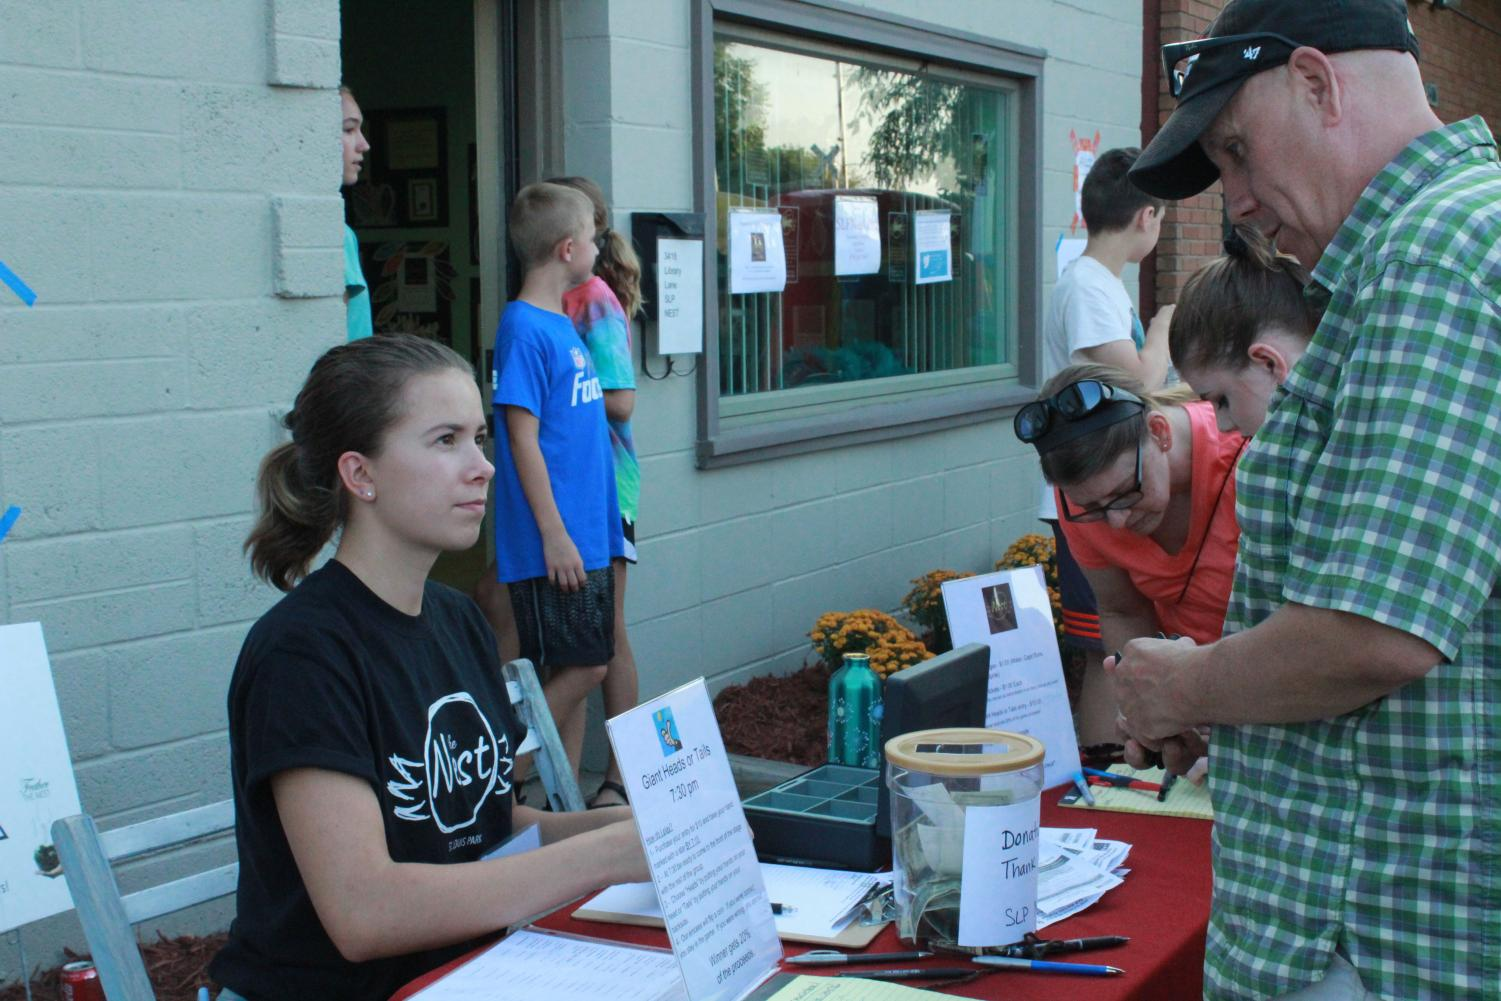 Senior and SLP Nest board member Lexi Lee sells raffle tickets to a community member at the SLP Nest street party Aug. 15. All money and donations collected at the event will be used support and run the SLP Nest.